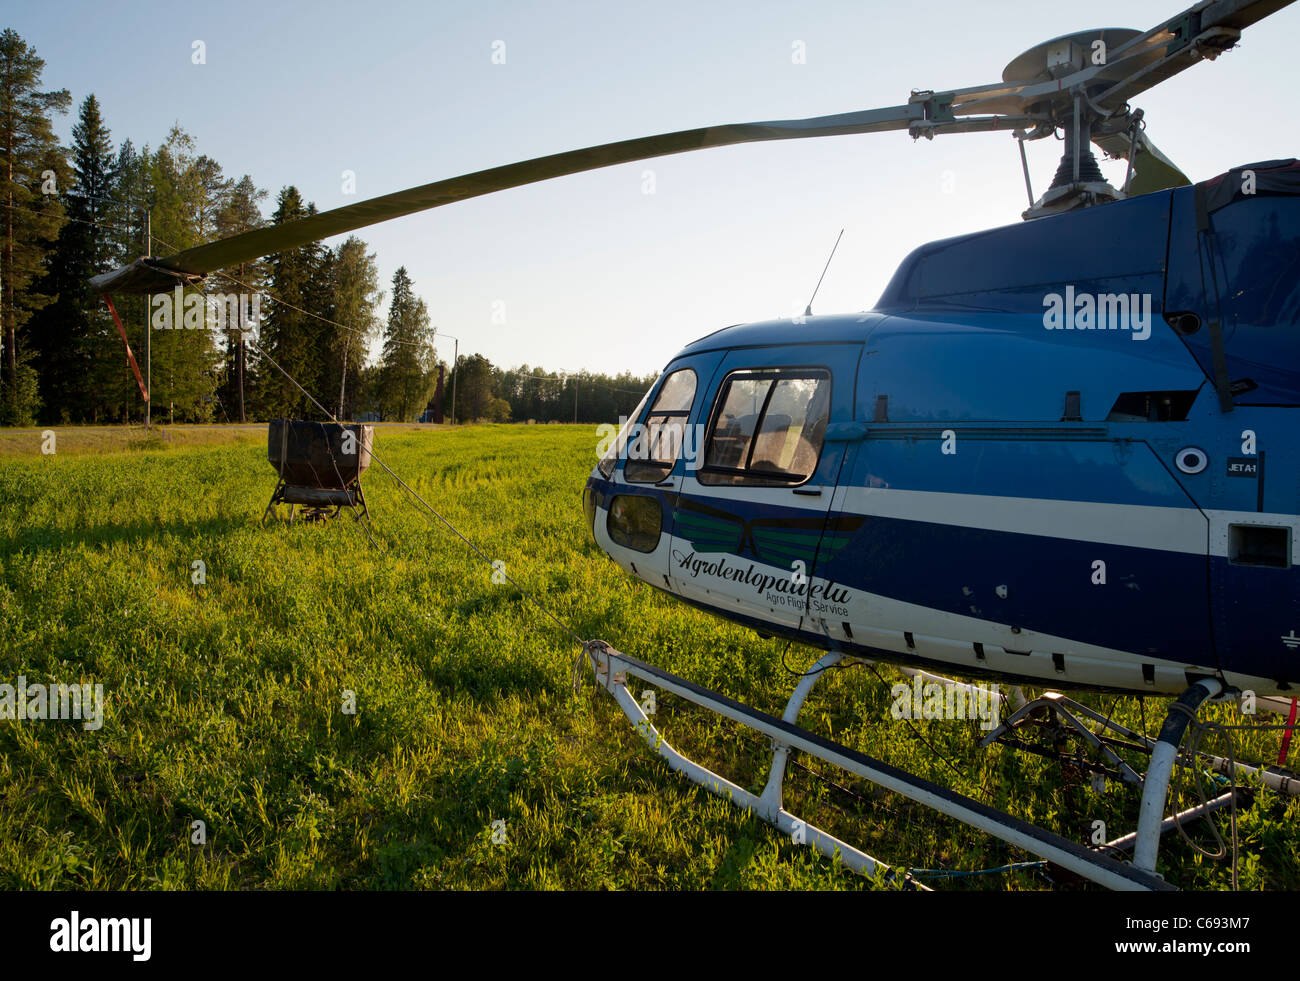 Helicopter , used for fertilizing forests , has  landed to a field , ferttilizer spreader bucket / apparatus at - Stock Image